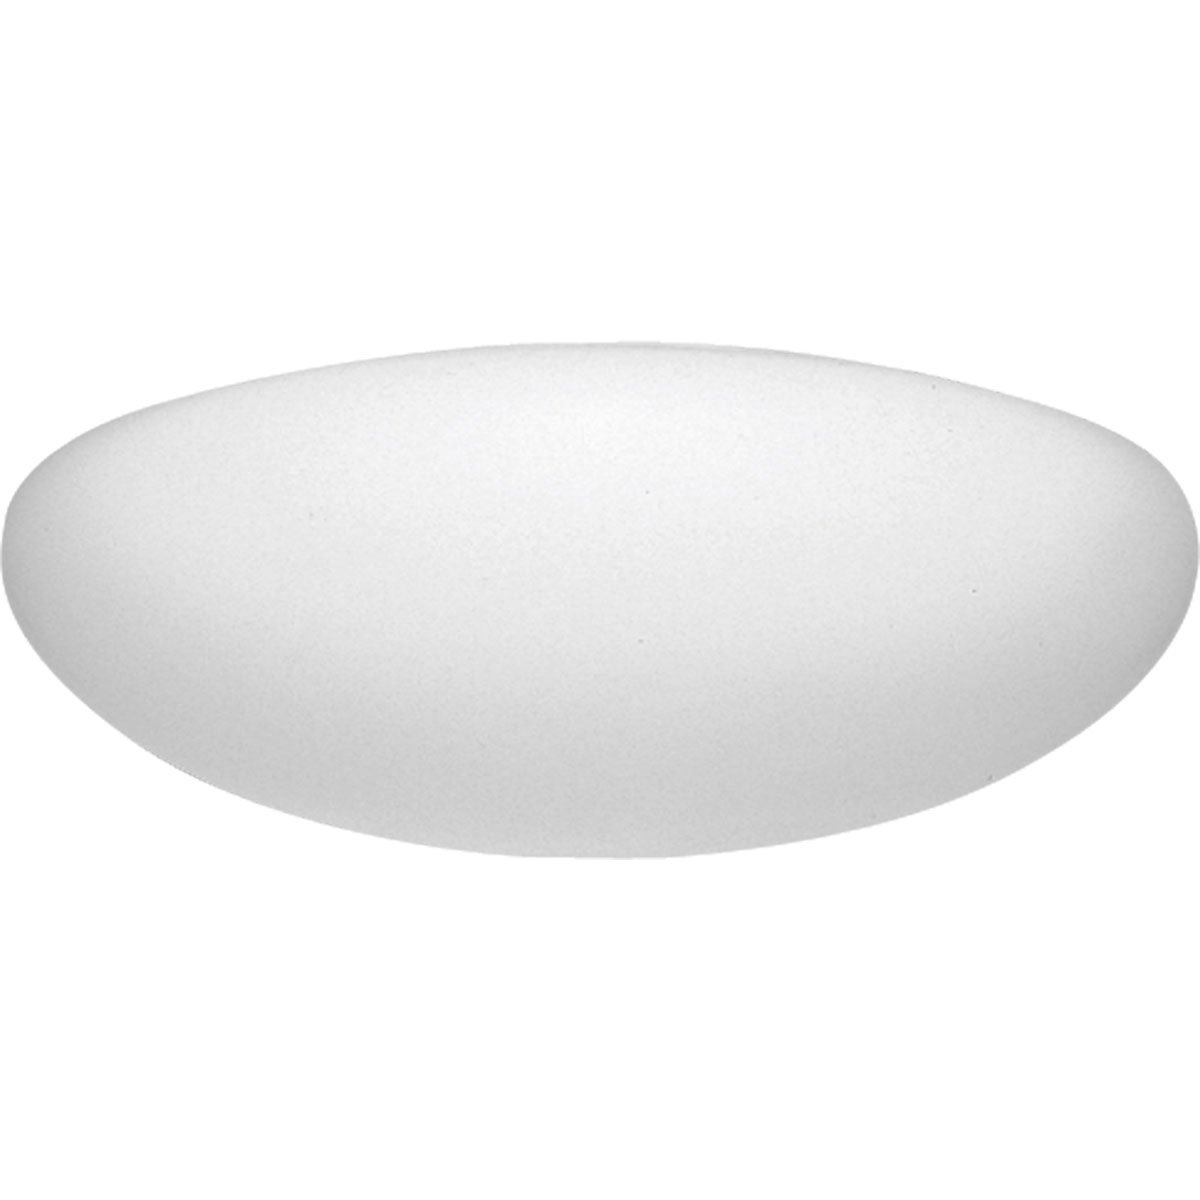 Progress Lighting P7307-60 White Contoured Acrylic Clouds Float Off The Ceiling Regressed White Chassis Wall Or Ceiling Mount with Standard 120 Volt Normal Power Factor Ballasts, White